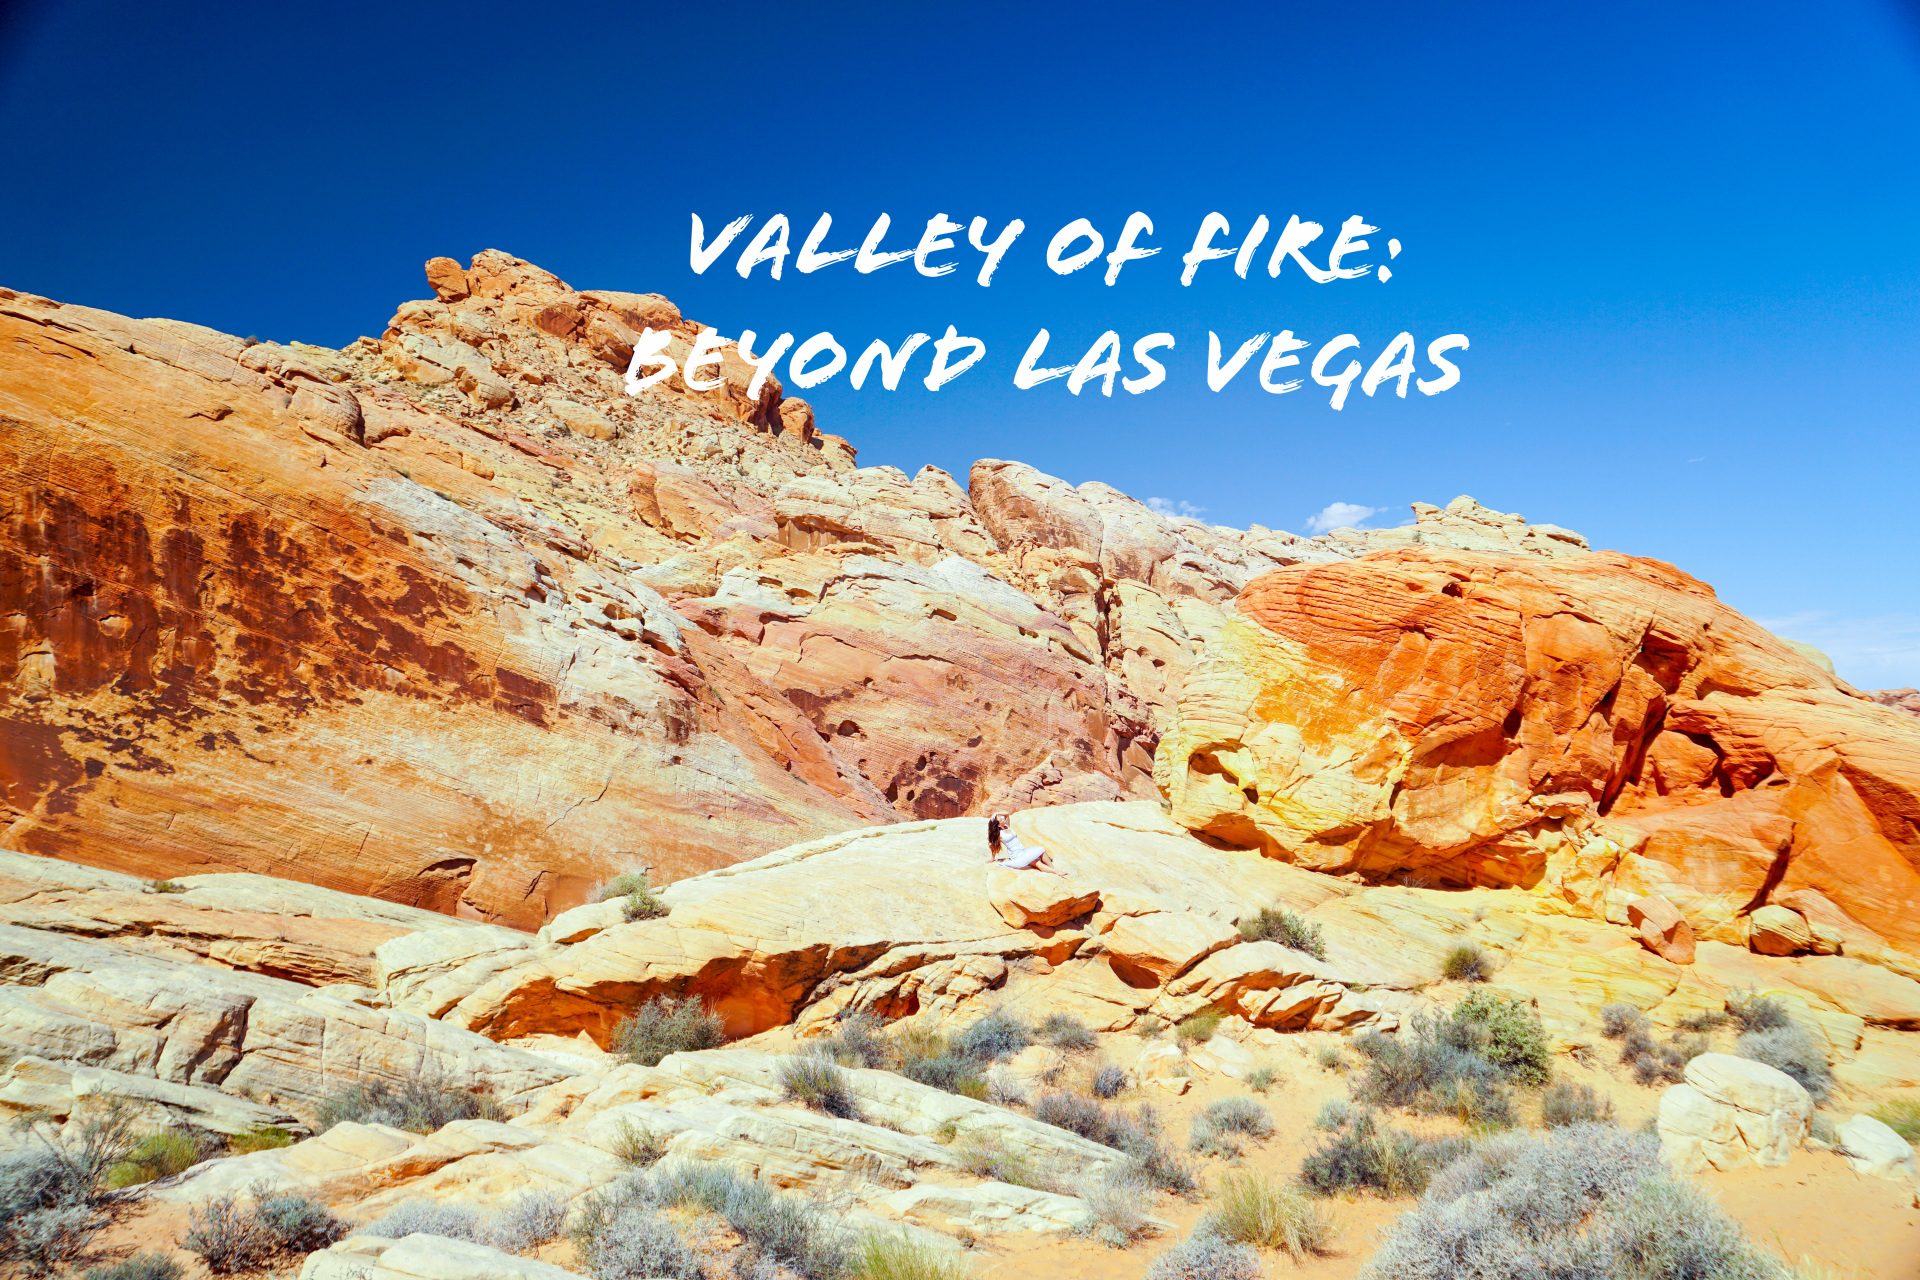 Valley of Fire: Beyond Las Vegas